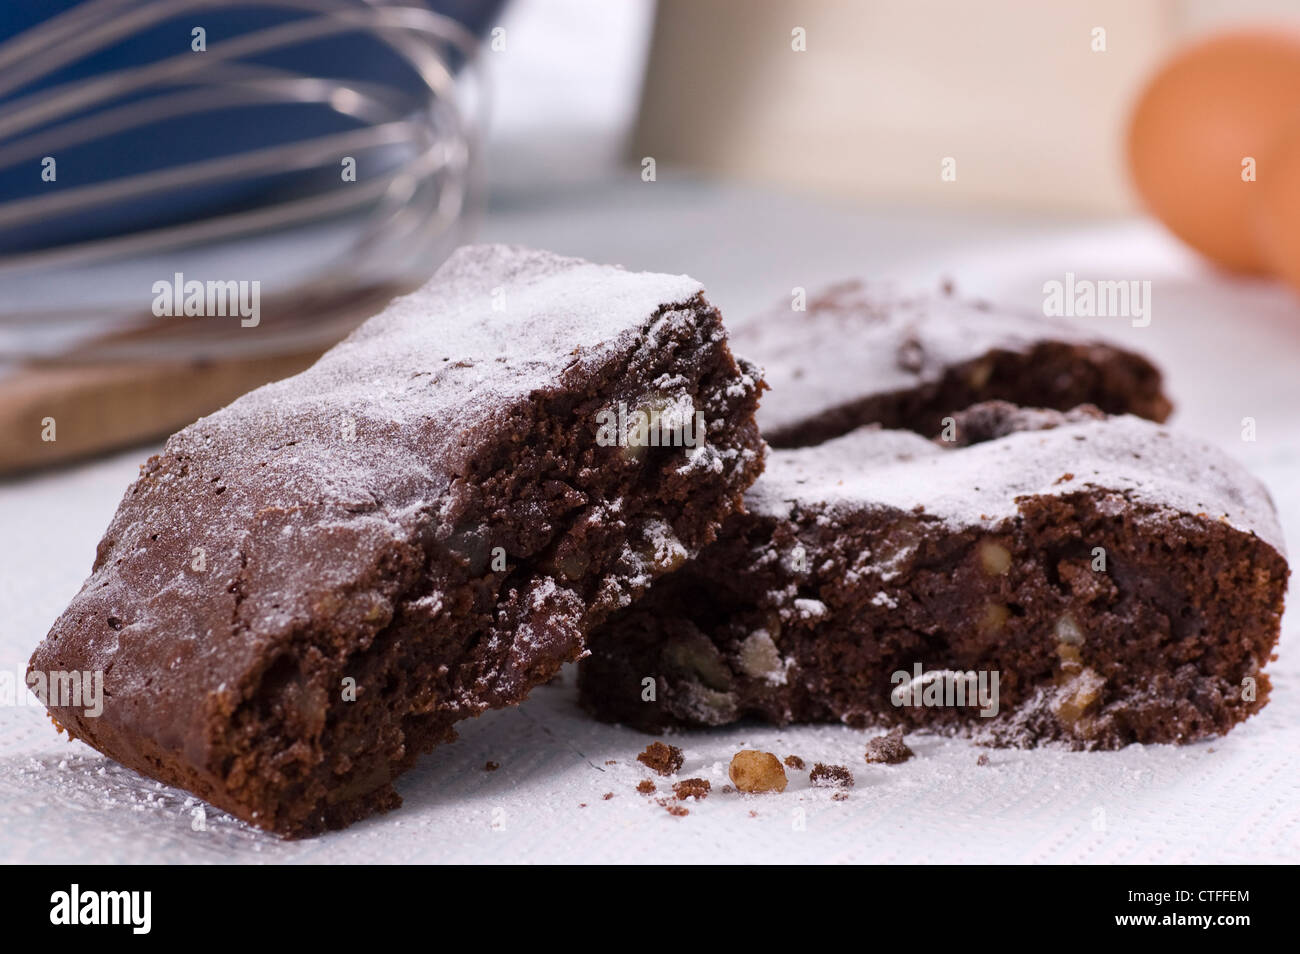 Pecan, Rum and Stem Ginger Chocolate Brownies dusted with icing sugar - Stock Image